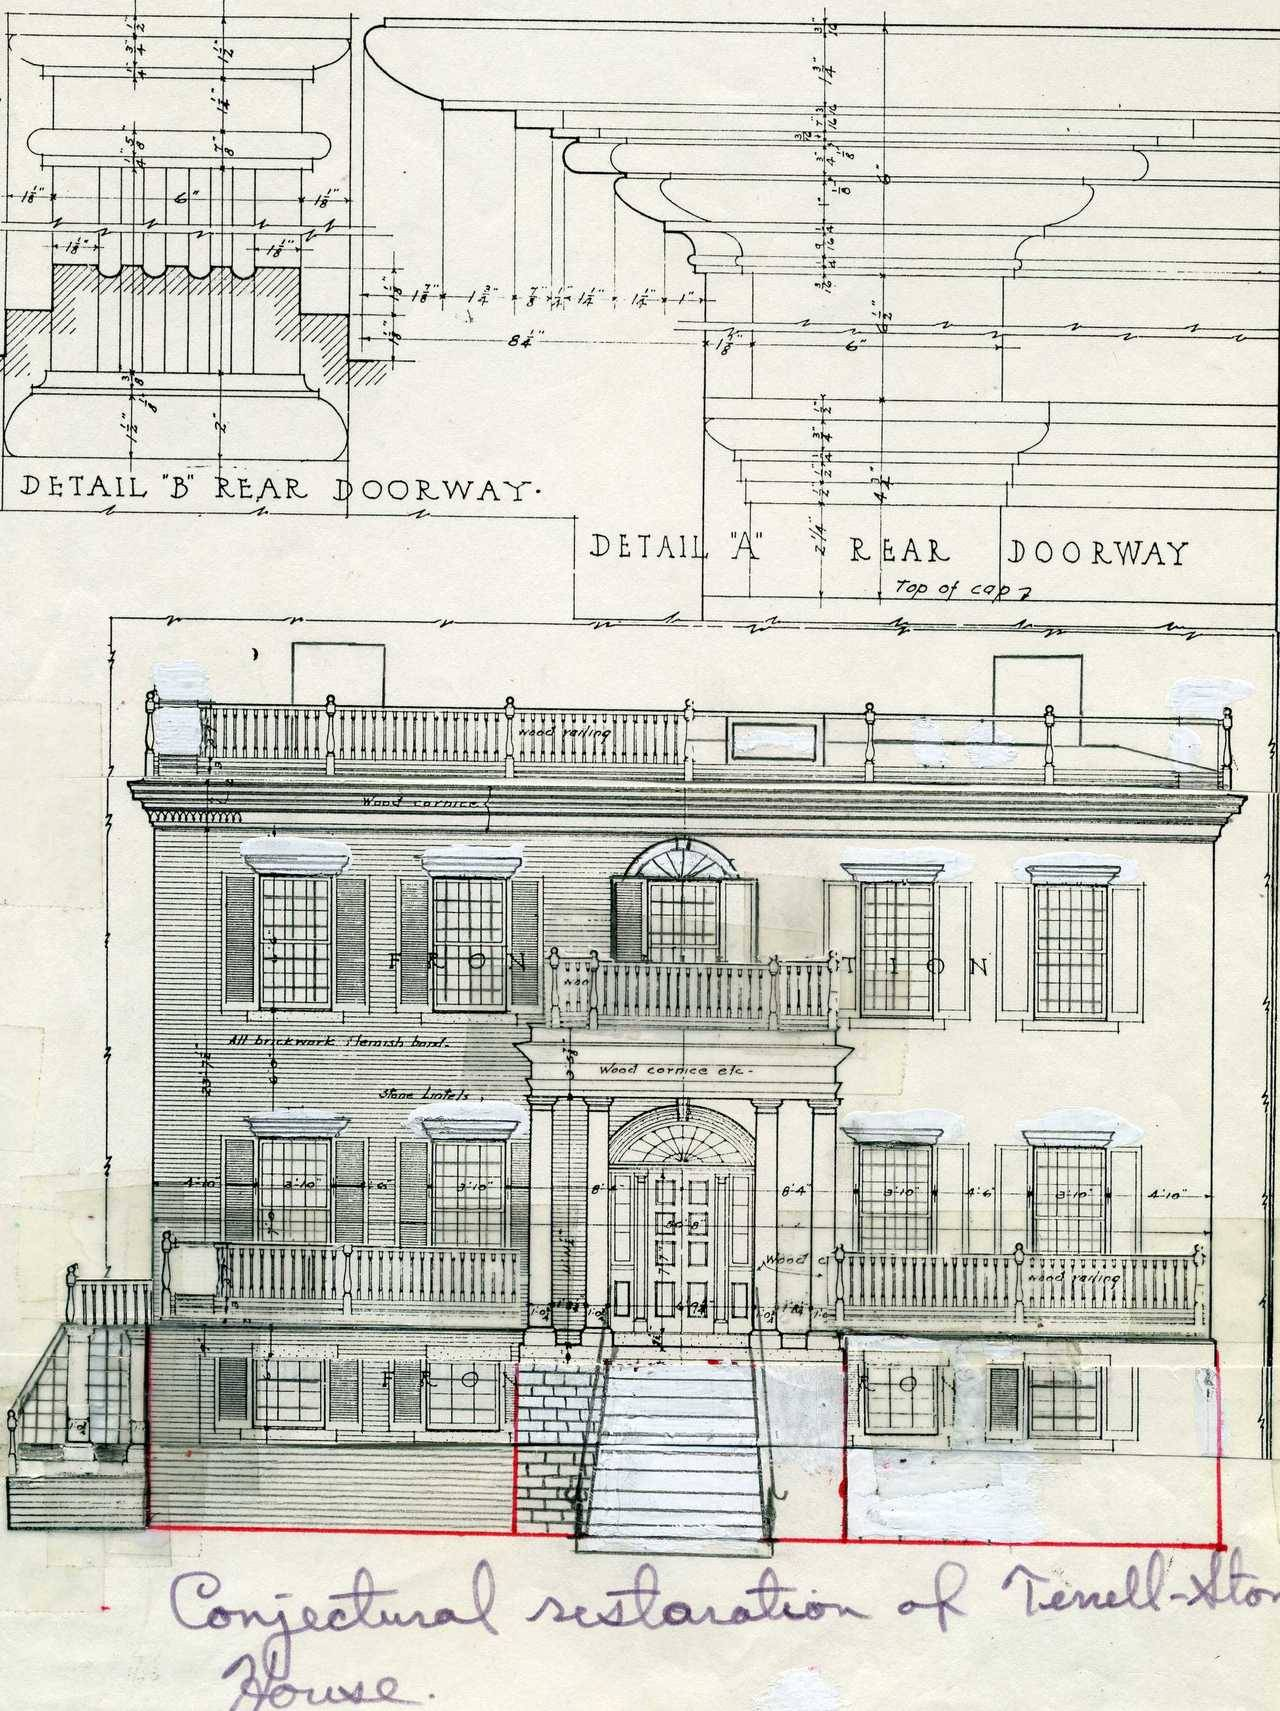 gatrust:  1991 Proposed restoration of front facade, Terrell-Stone House, Sparta, Ga.